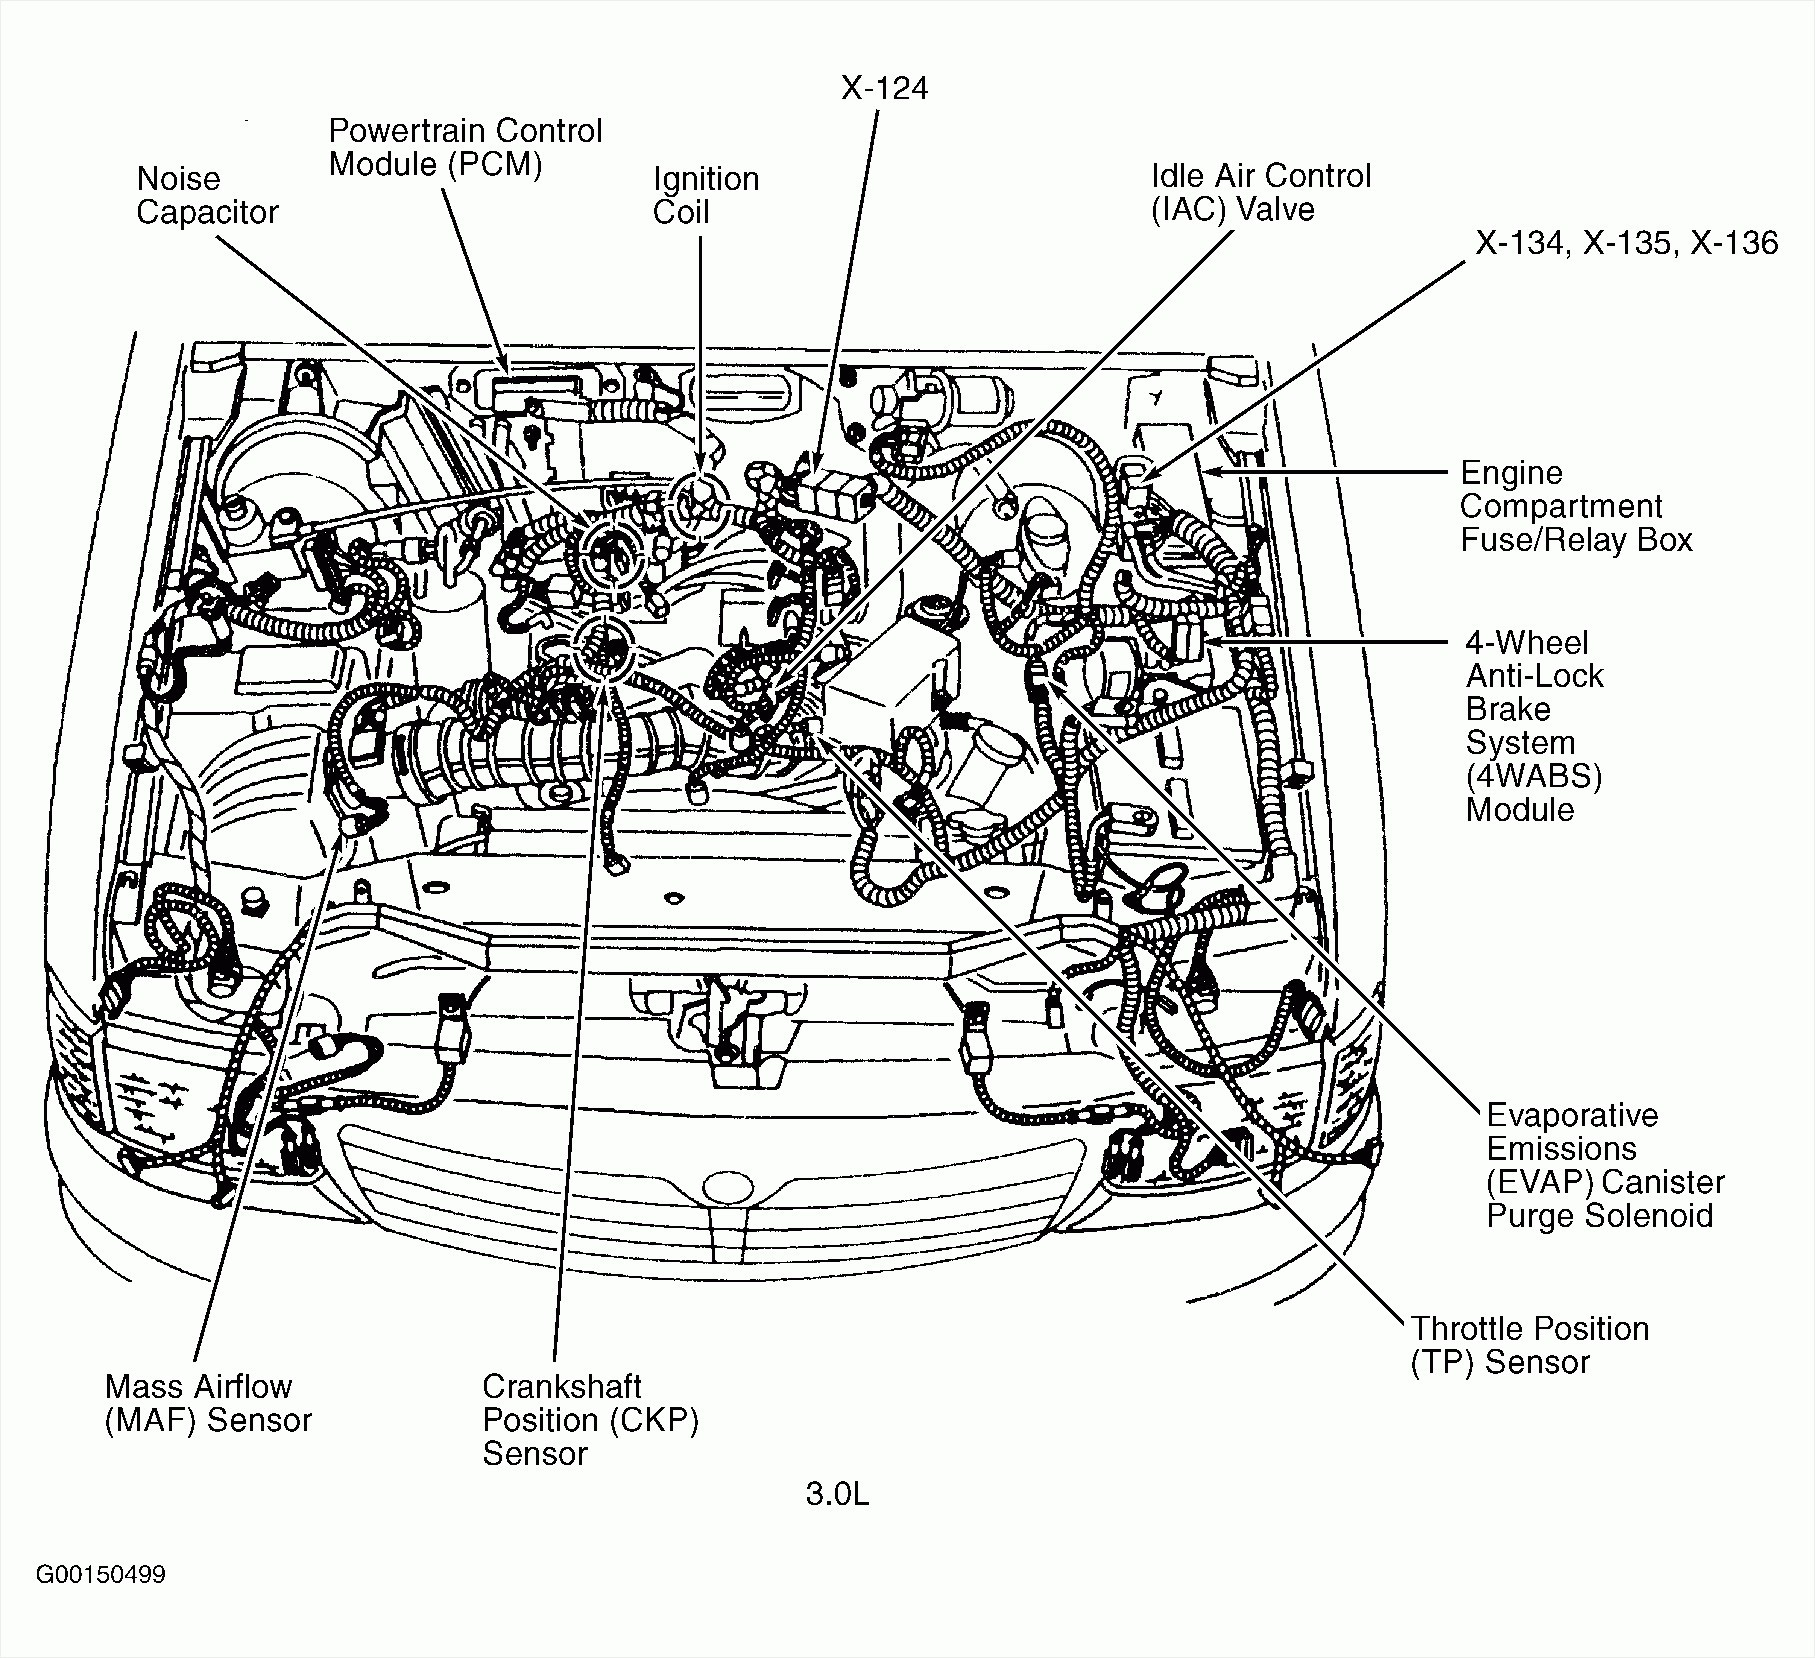 1995 Ford Mustang Engine Diagram 2008 Bmw 328i Engine